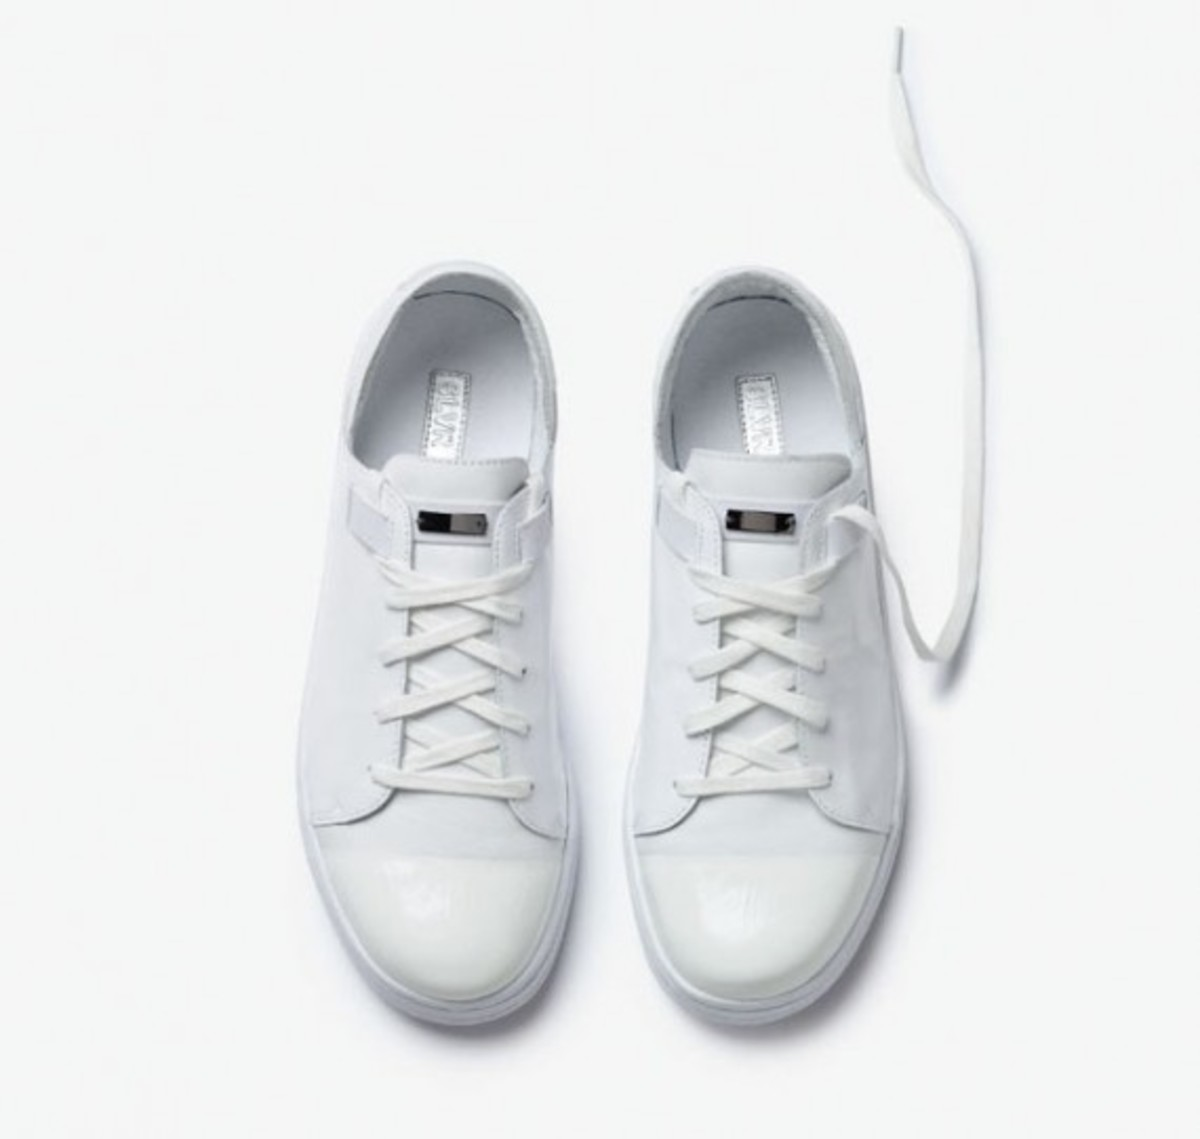 adidas-slvr-ss12-footwear-collection-09